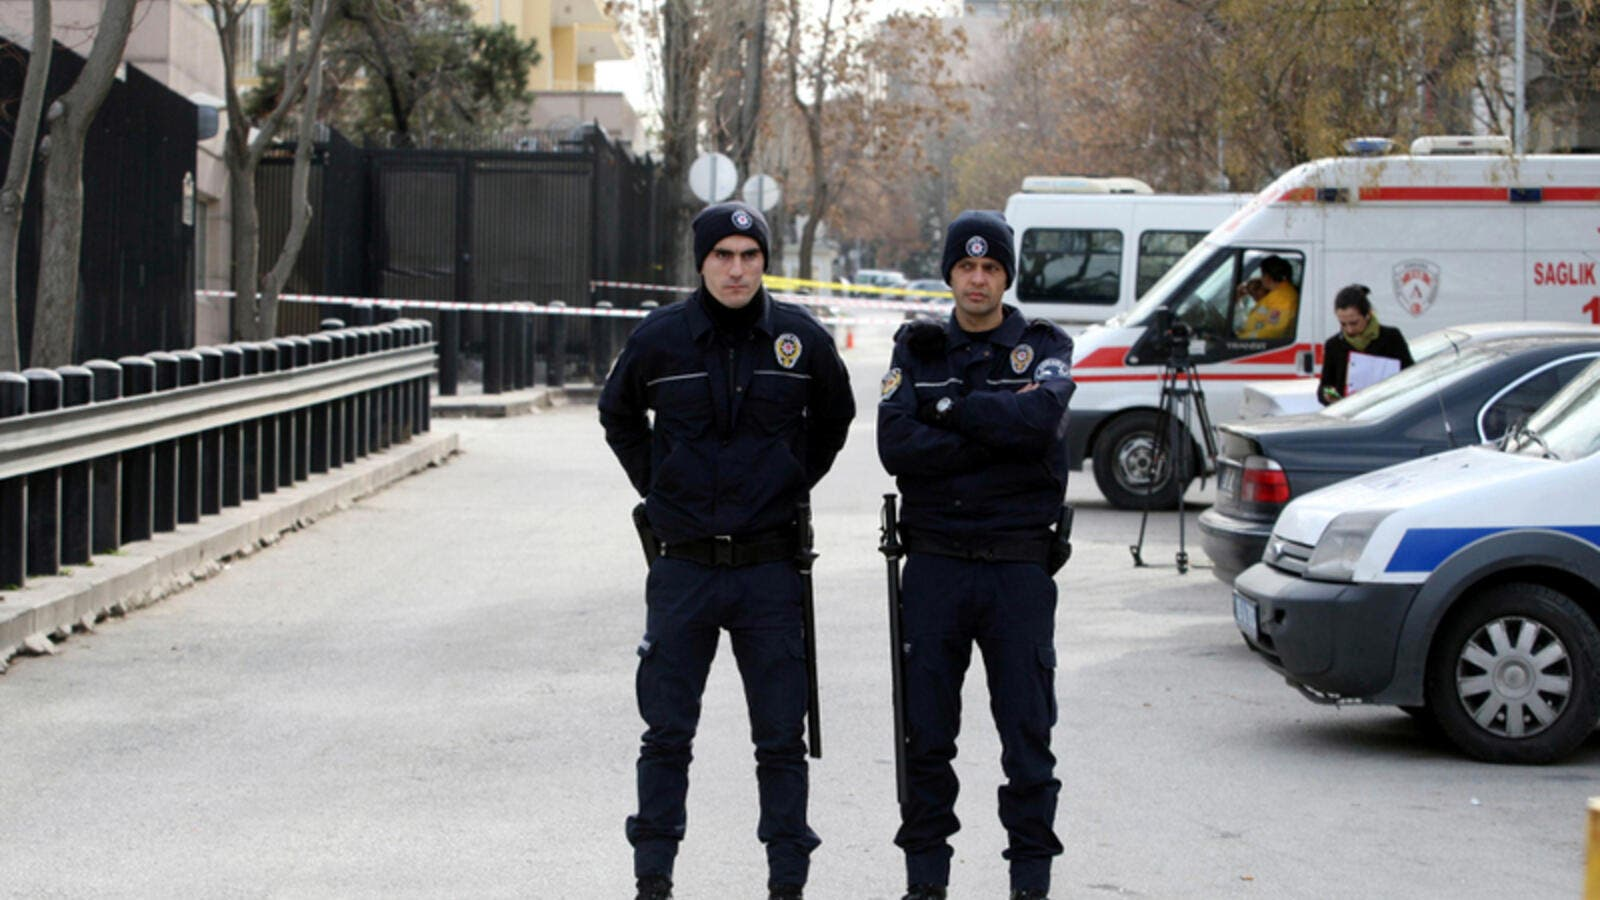 Police carried out the operations after receiving a tip that the suspects were plotting an attack. (AFP/File)